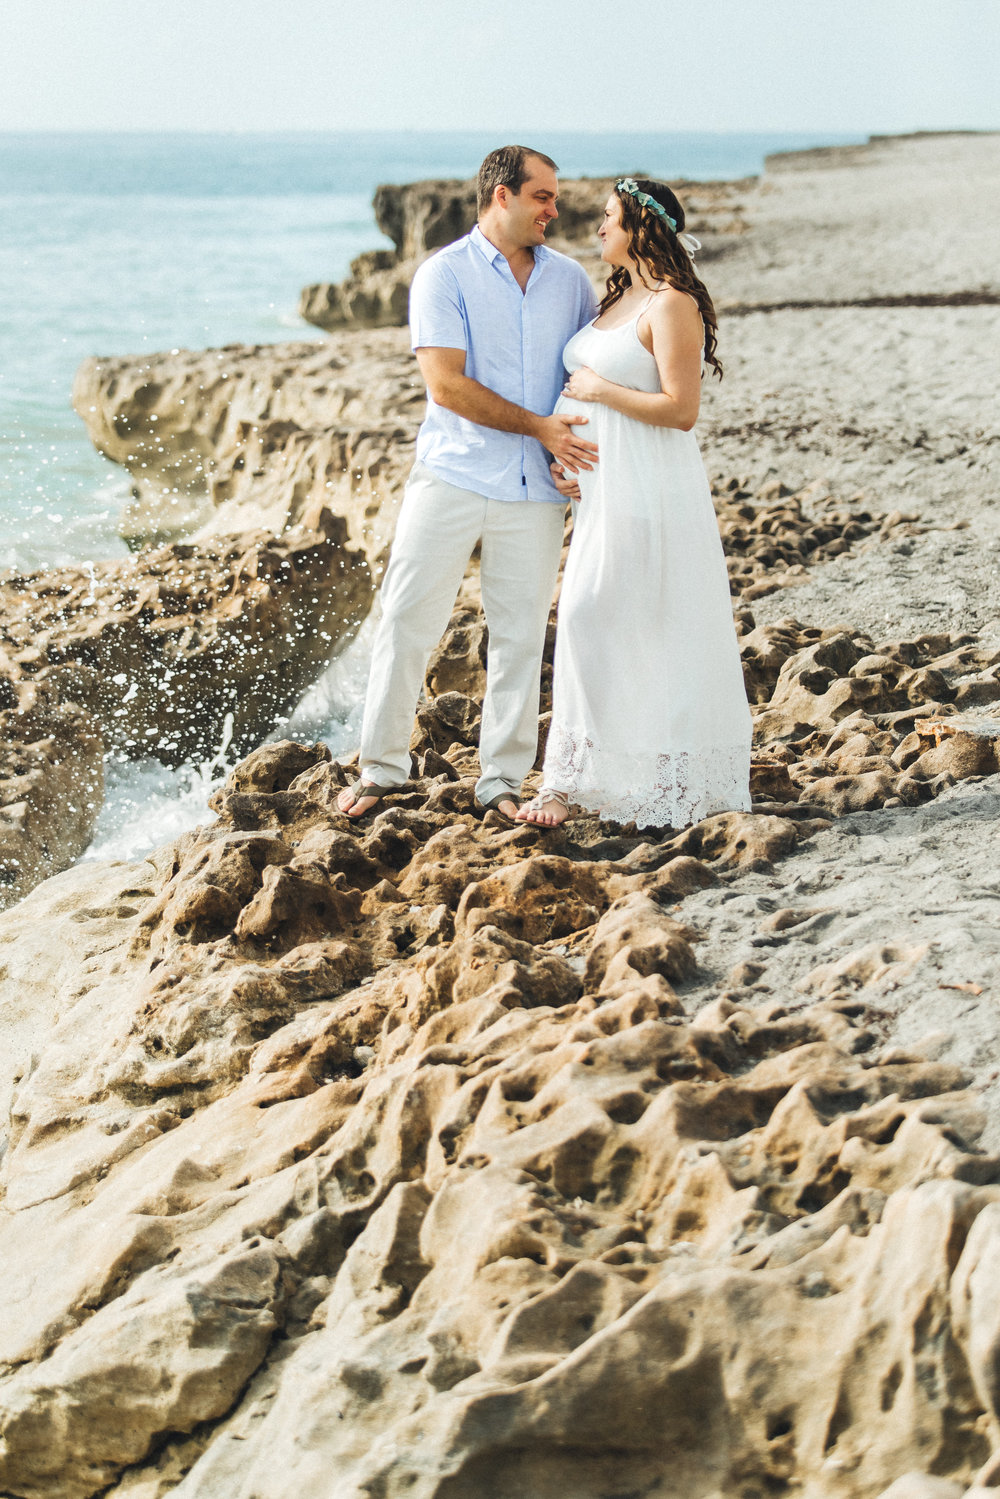 White Maternity Dress- Erica + Aaron's Blowing Rock Preserve- Florida Maternity Photos-14.jpg